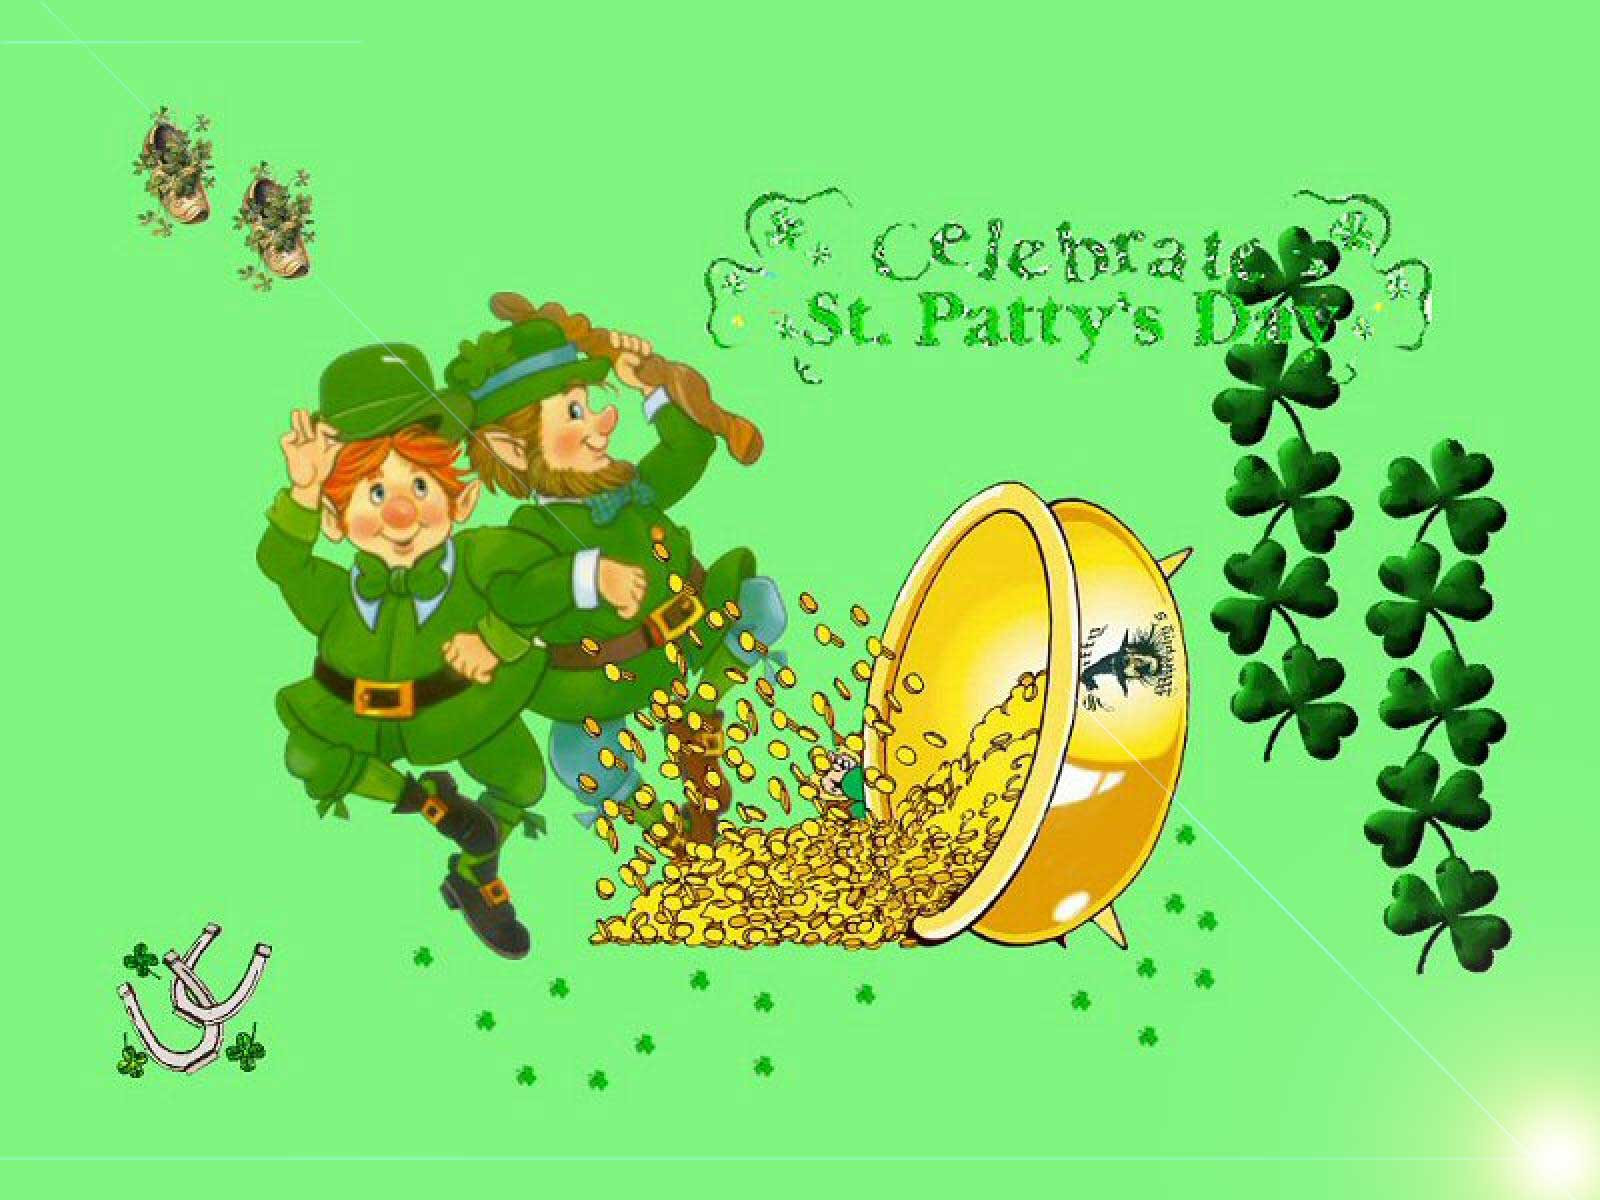 gallery St Patricks Day Greetings WallPapers Fun Gallery Images 1600x1200